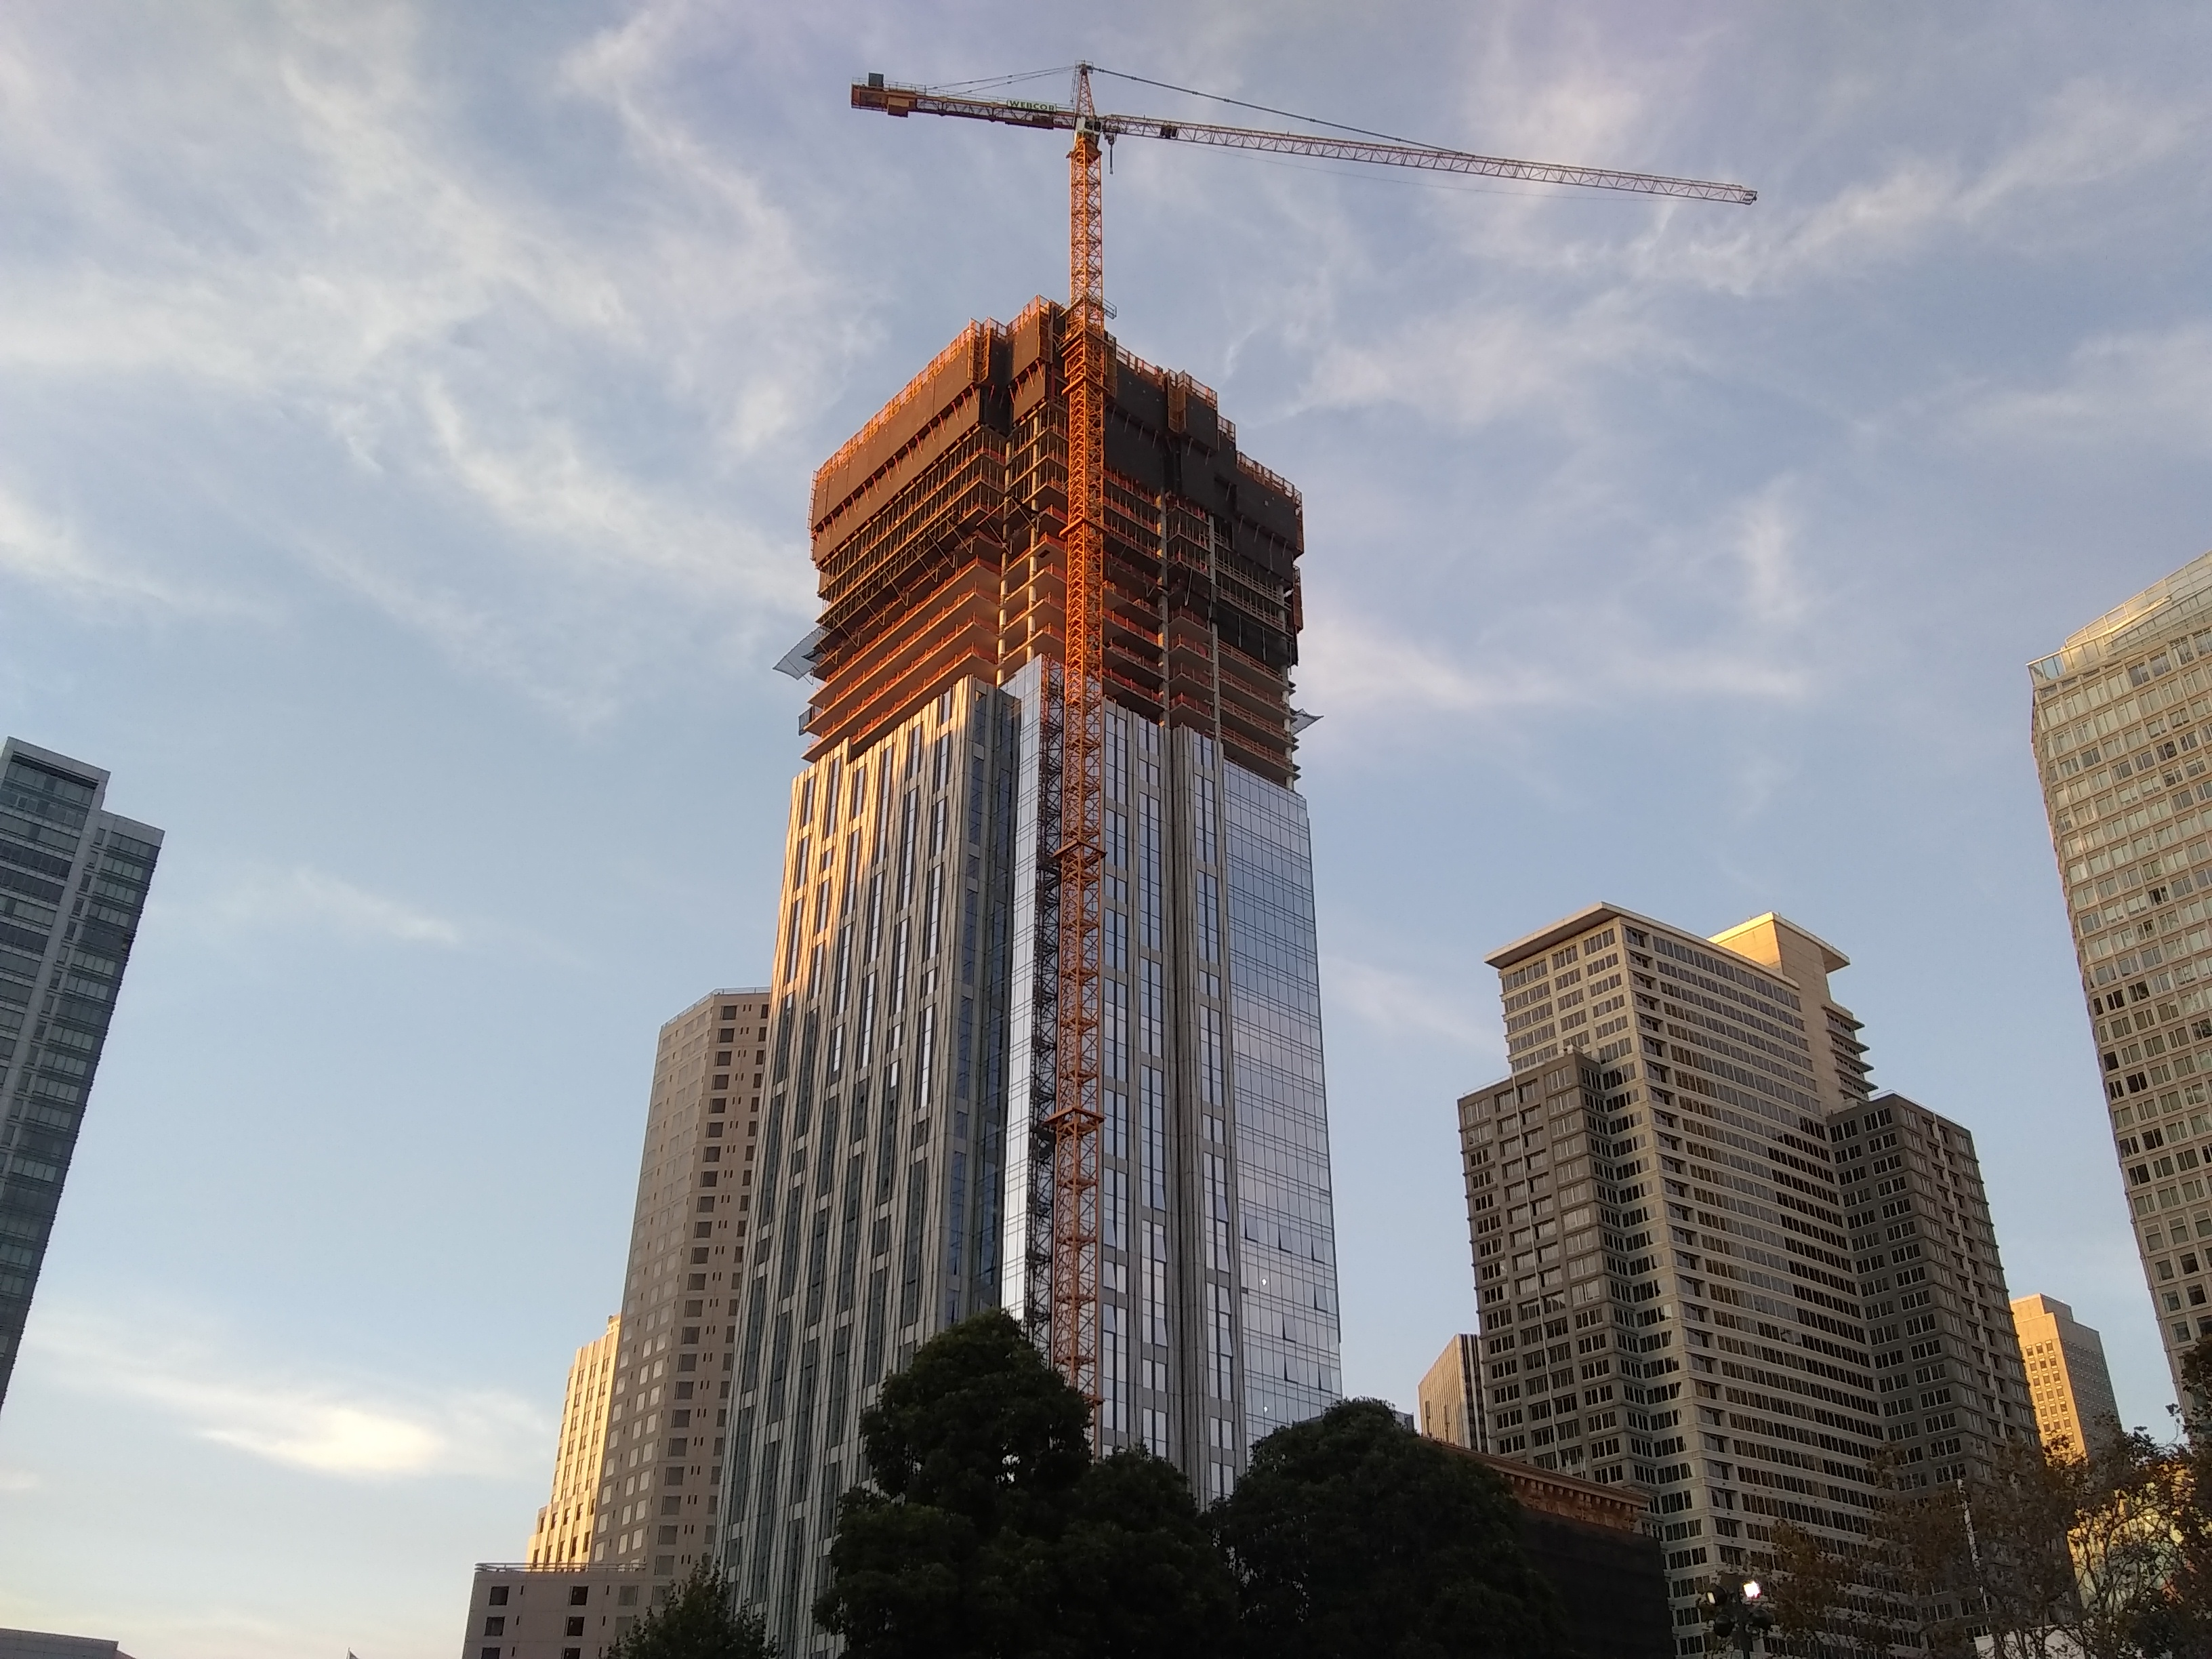 SF is the most expensive place in the world to build